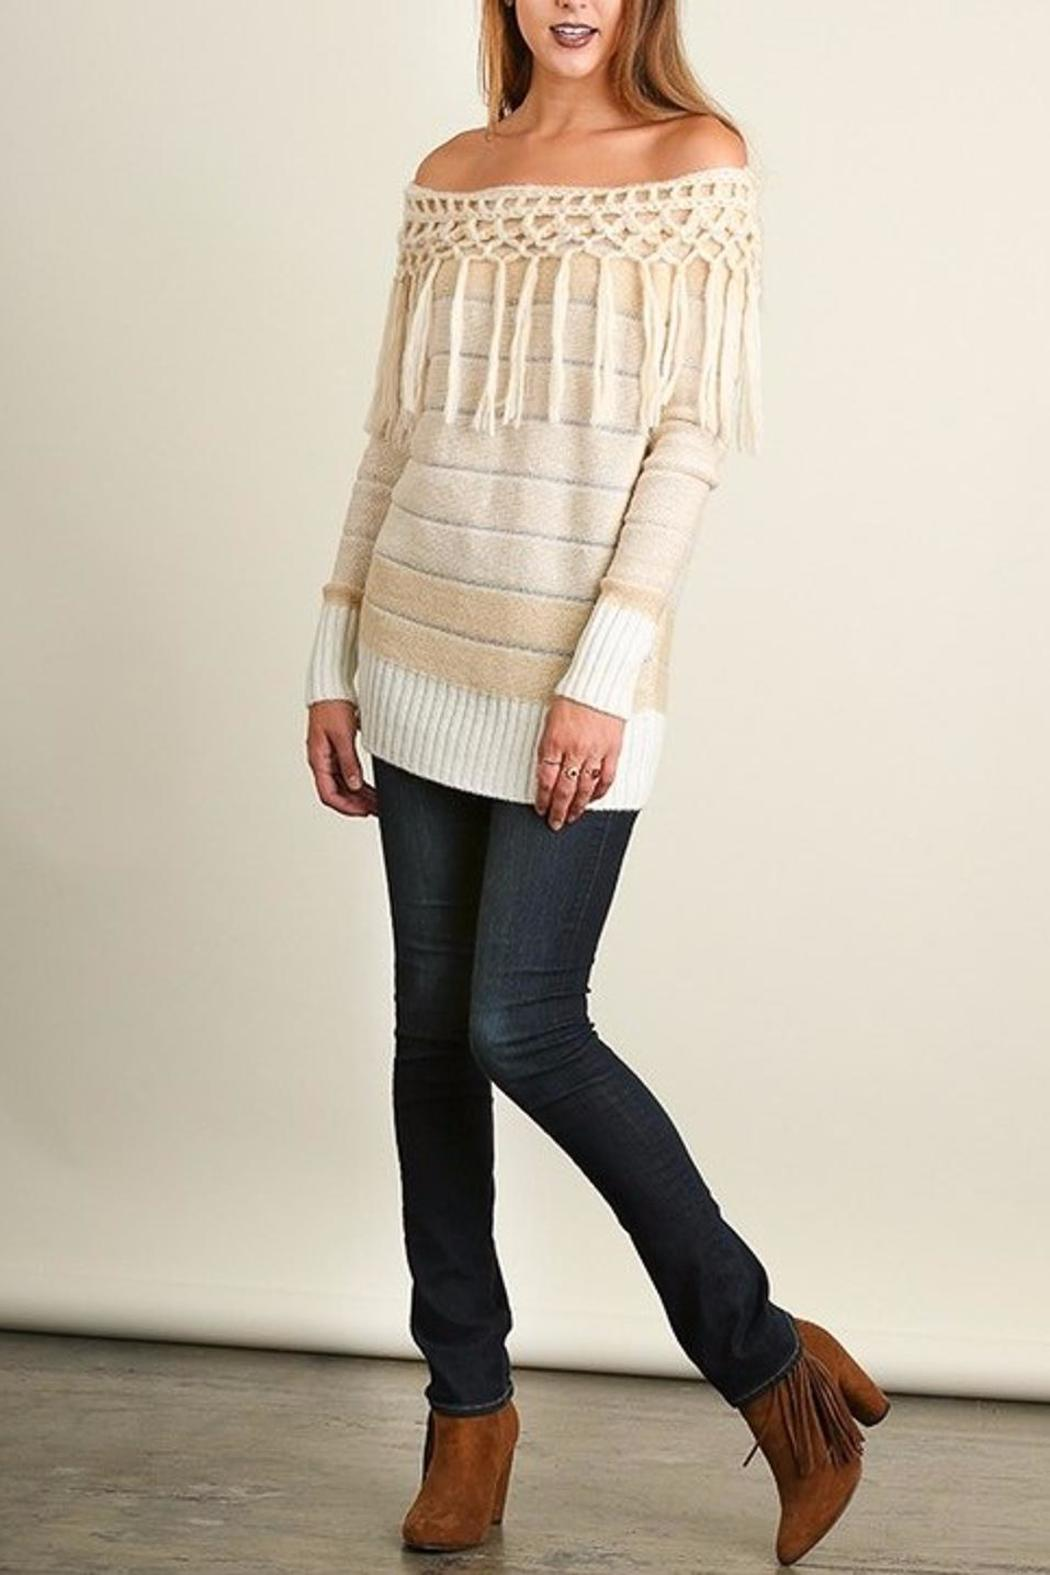 People Outfitter Tassels Tunic Sweater - Front Cropped Image